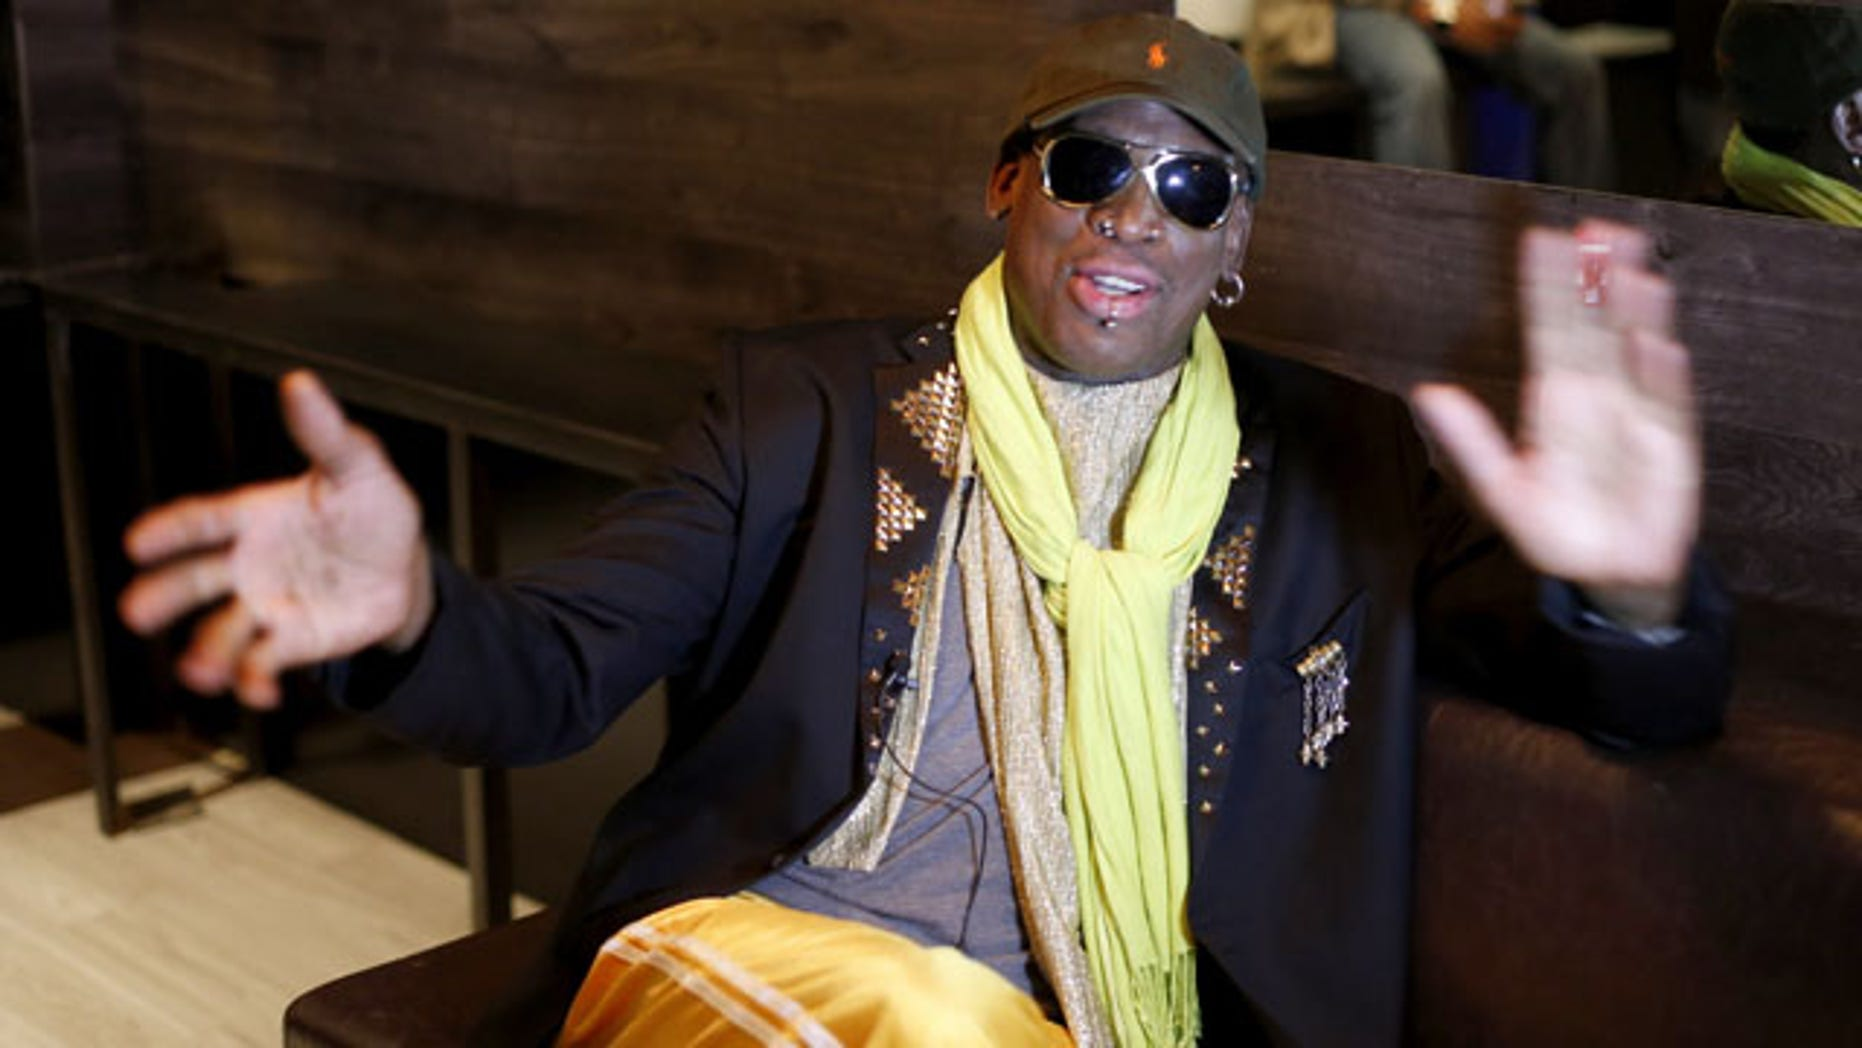 November 21, 2013: Dennis Rodman gestures during an interview after a promotional event to pitch a vodka brand in Chicago. (AP Photo)